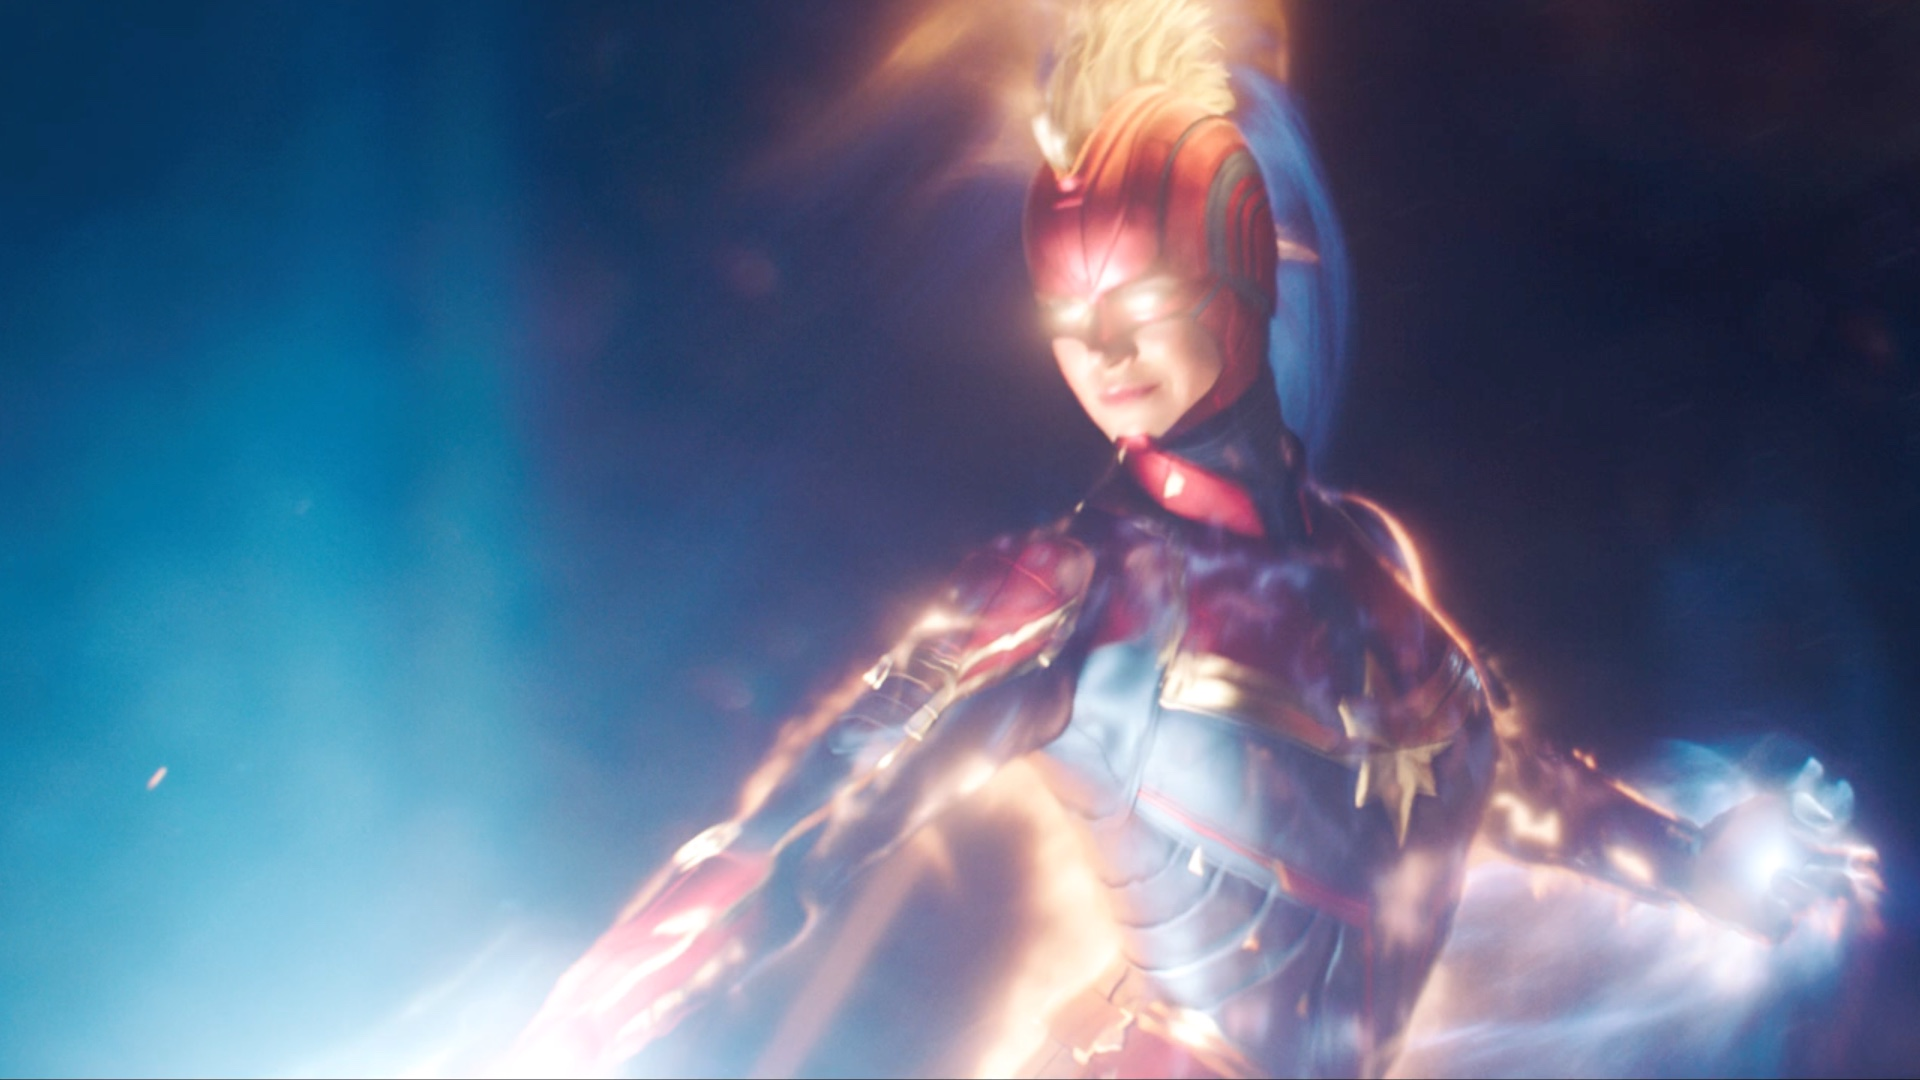 This Amazing New Trailer For Captain Marvel Unleashes The Awesome Power Geektyrant